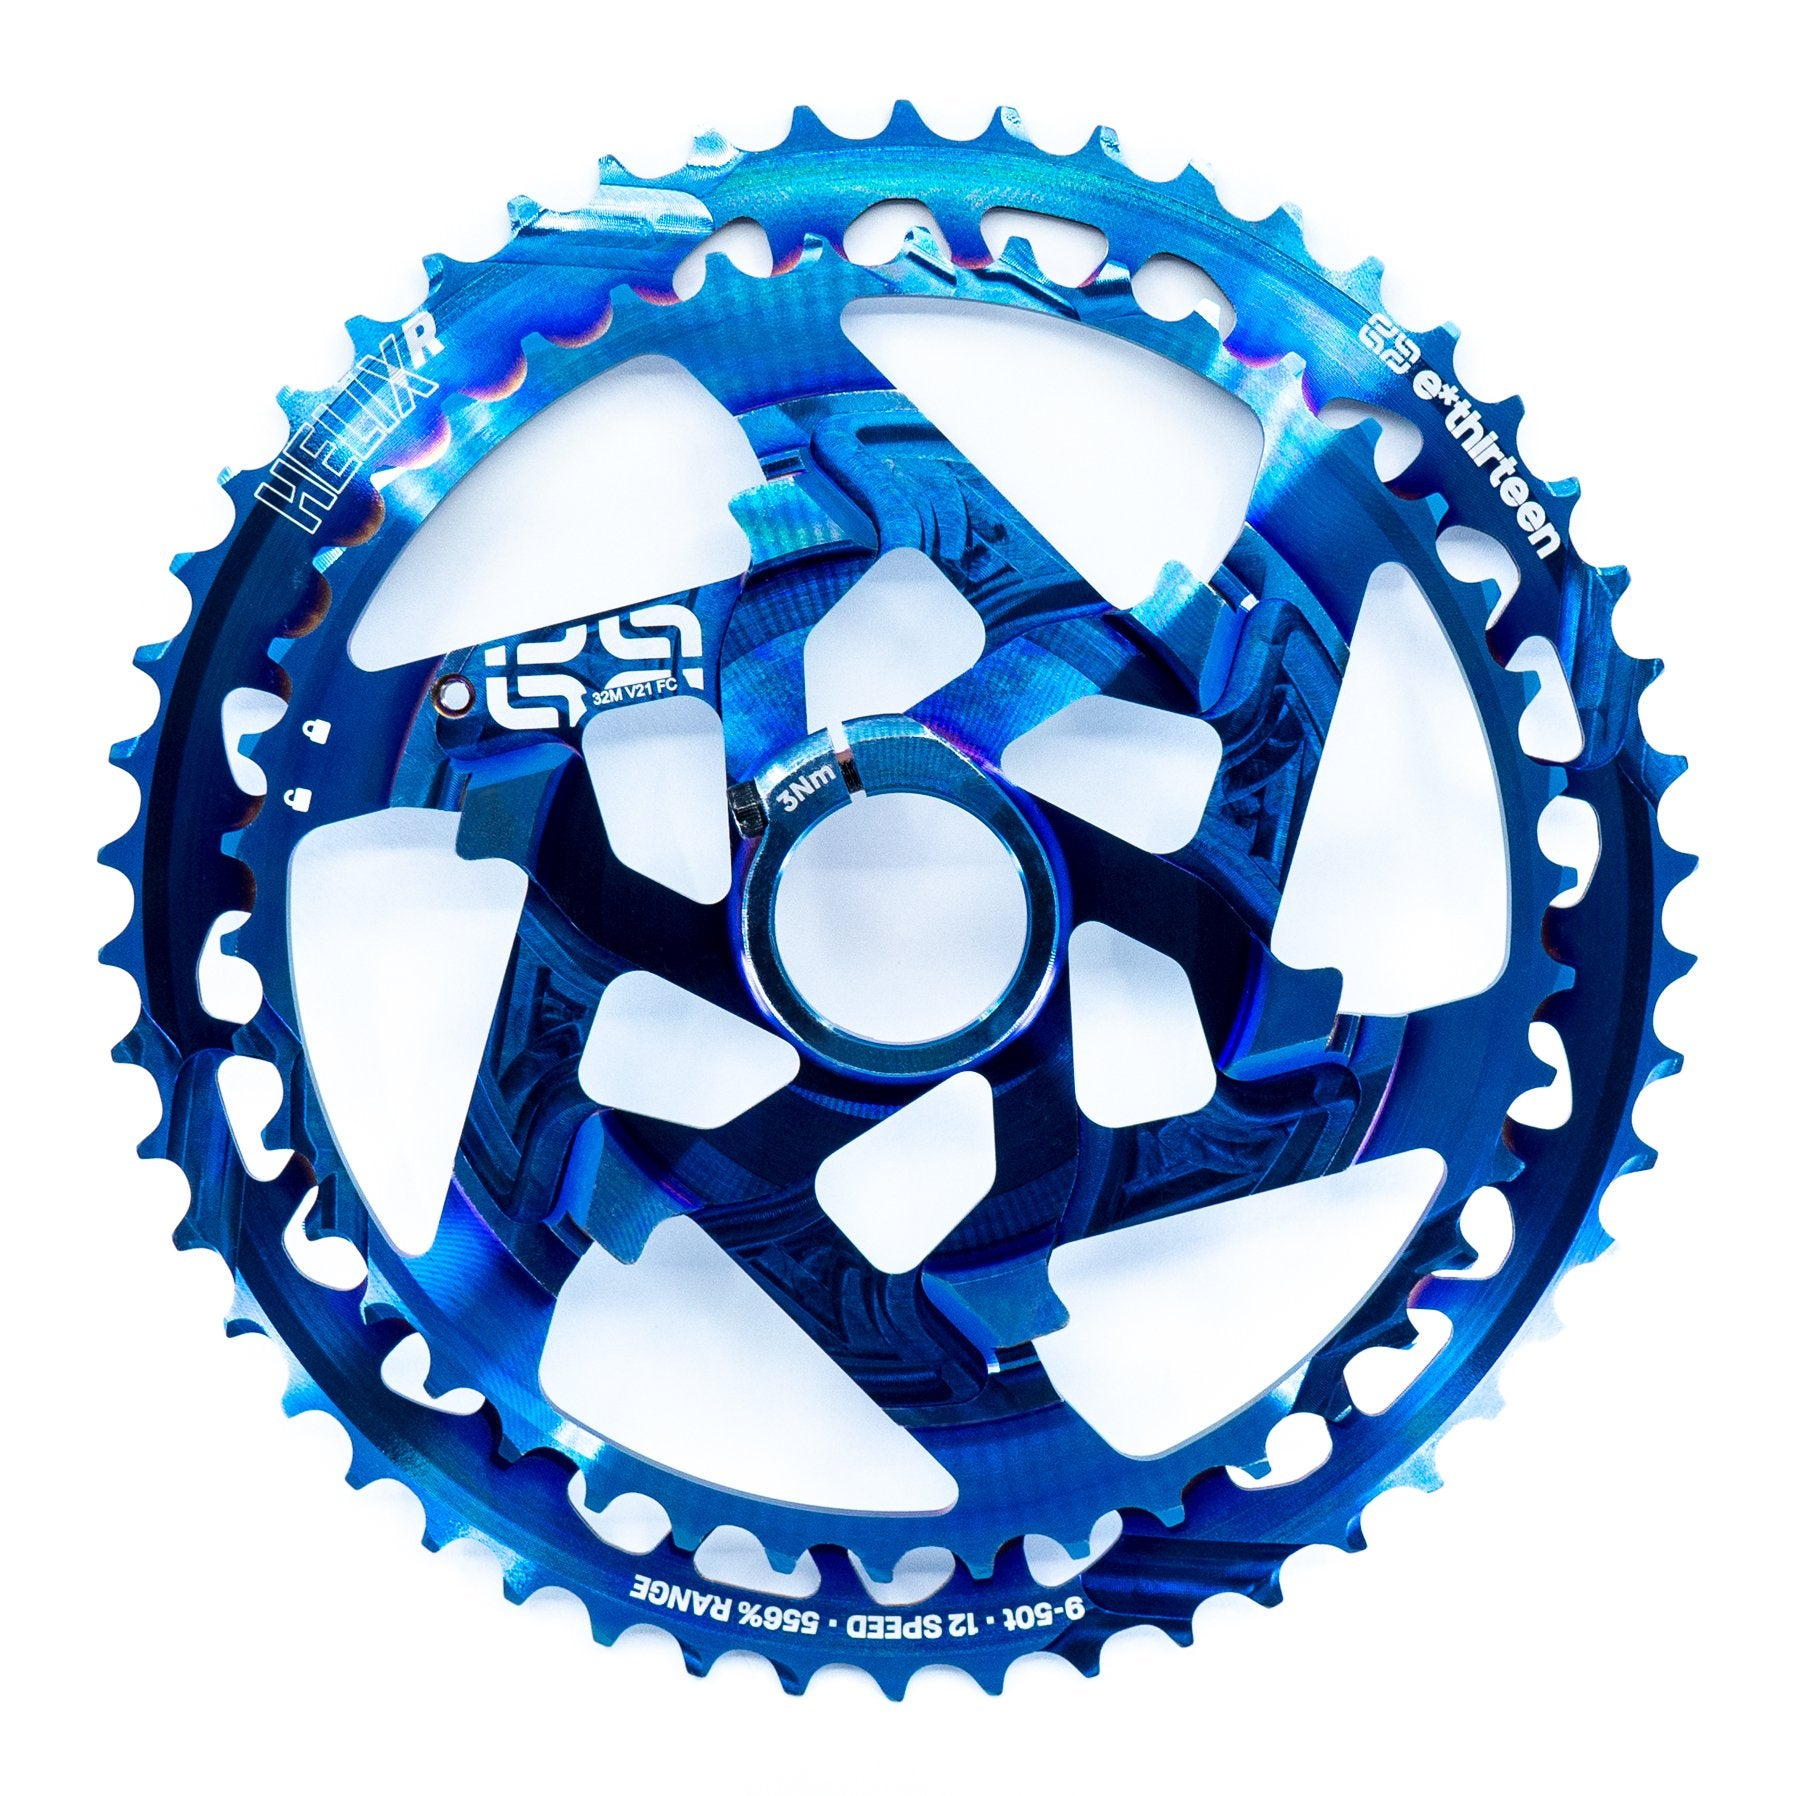 Helix R 12-Speed Cassette Replacement Clusters - AVAILABLE DECEMBER 1